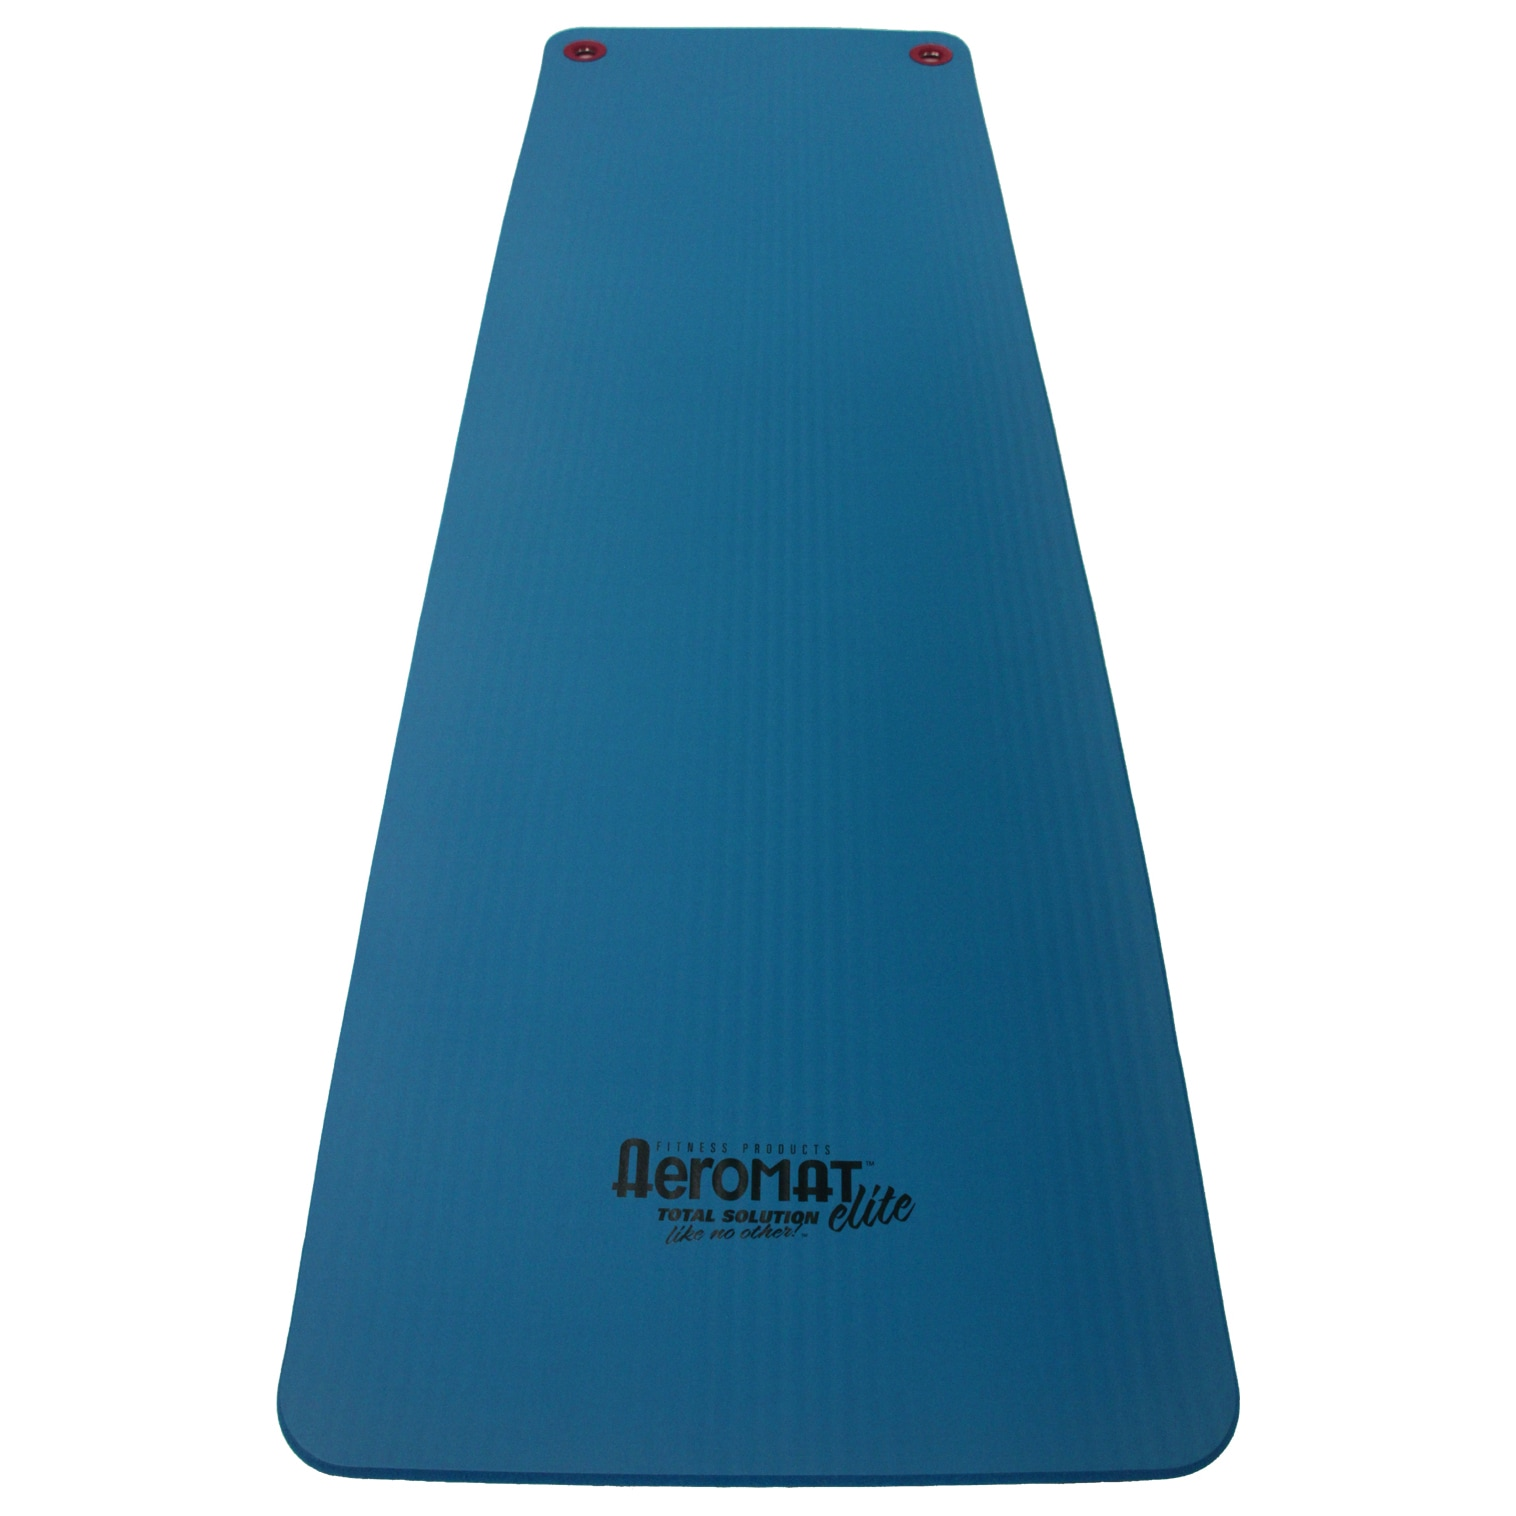 the mat workout work out start pilates psx mats dynamic to isawelly year